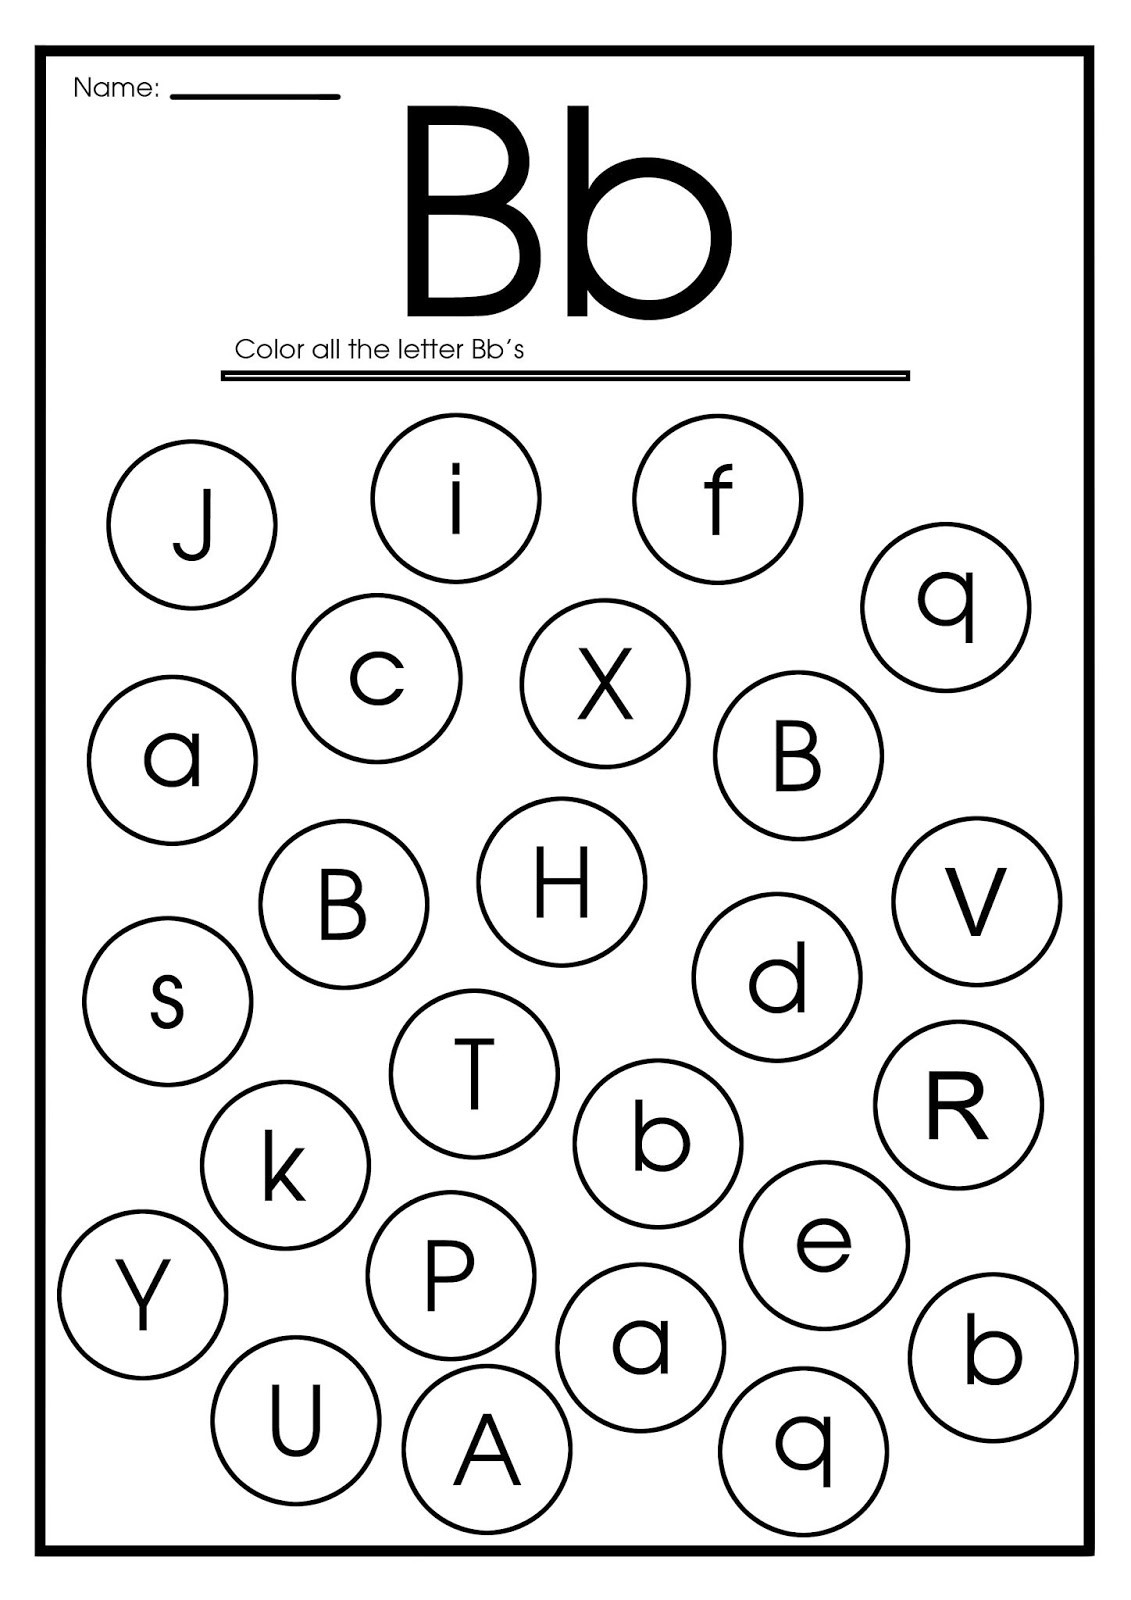 Letter B Worksheets Preschool Letter B Worksheets Flash Cards Coloring Pages